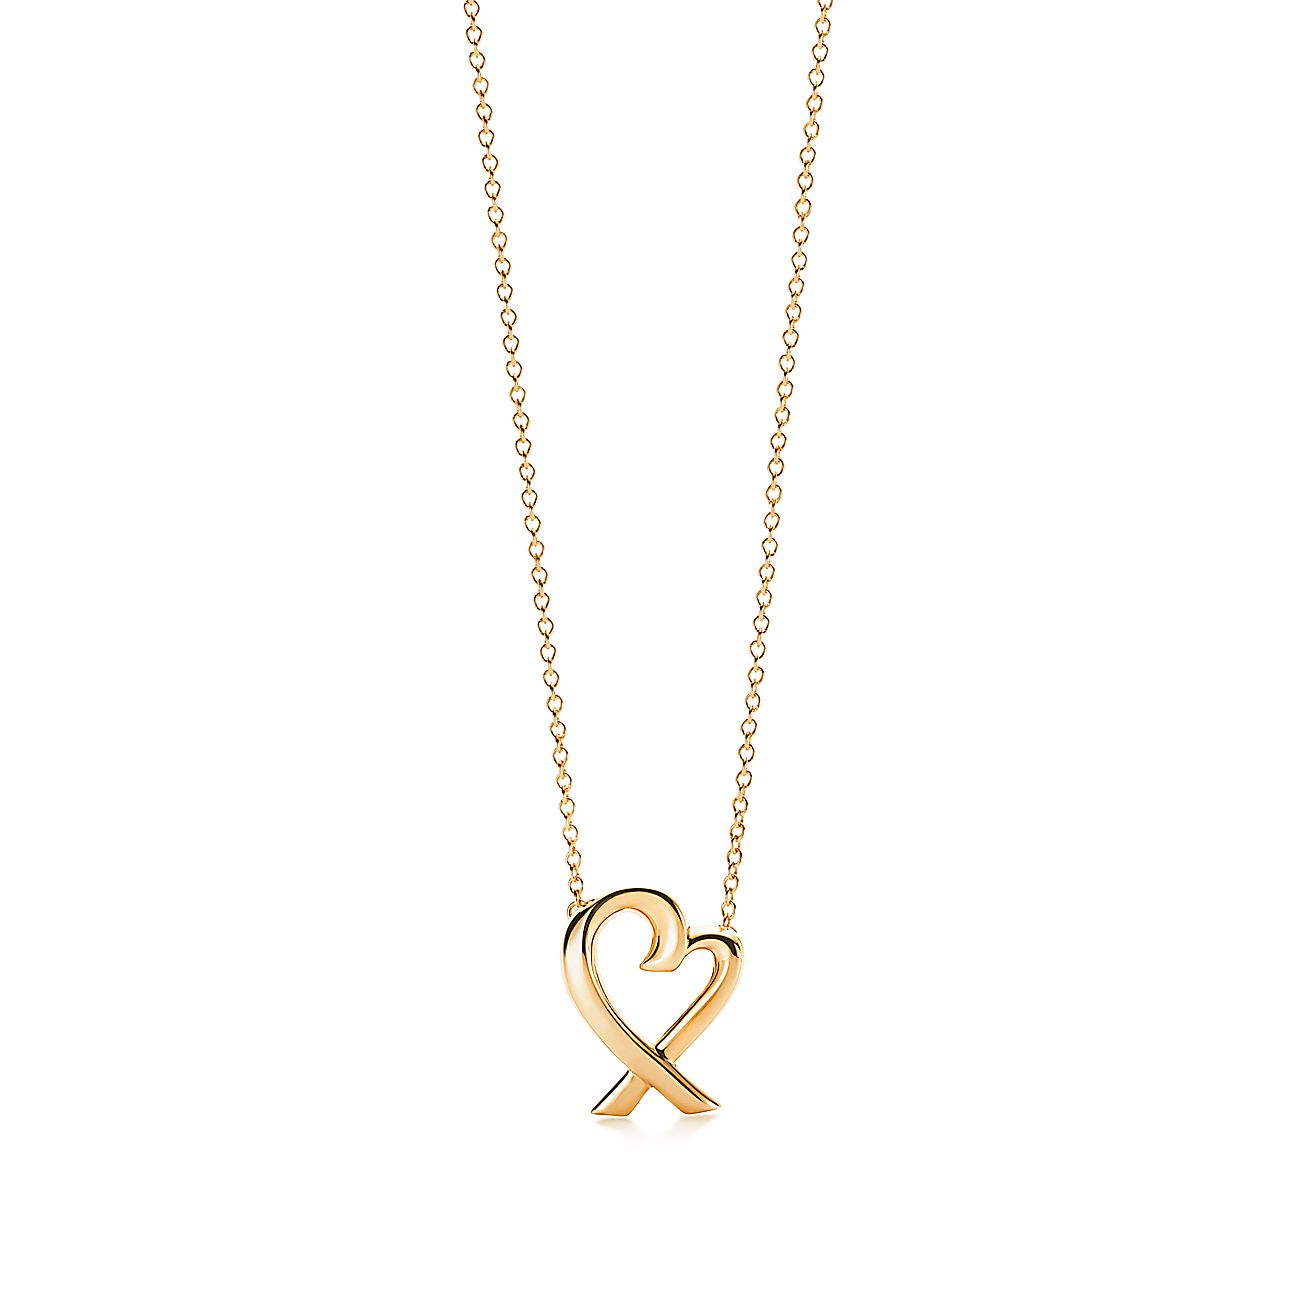 Paloma PicassoR Loving Heart Pendant In 18k Gold Small